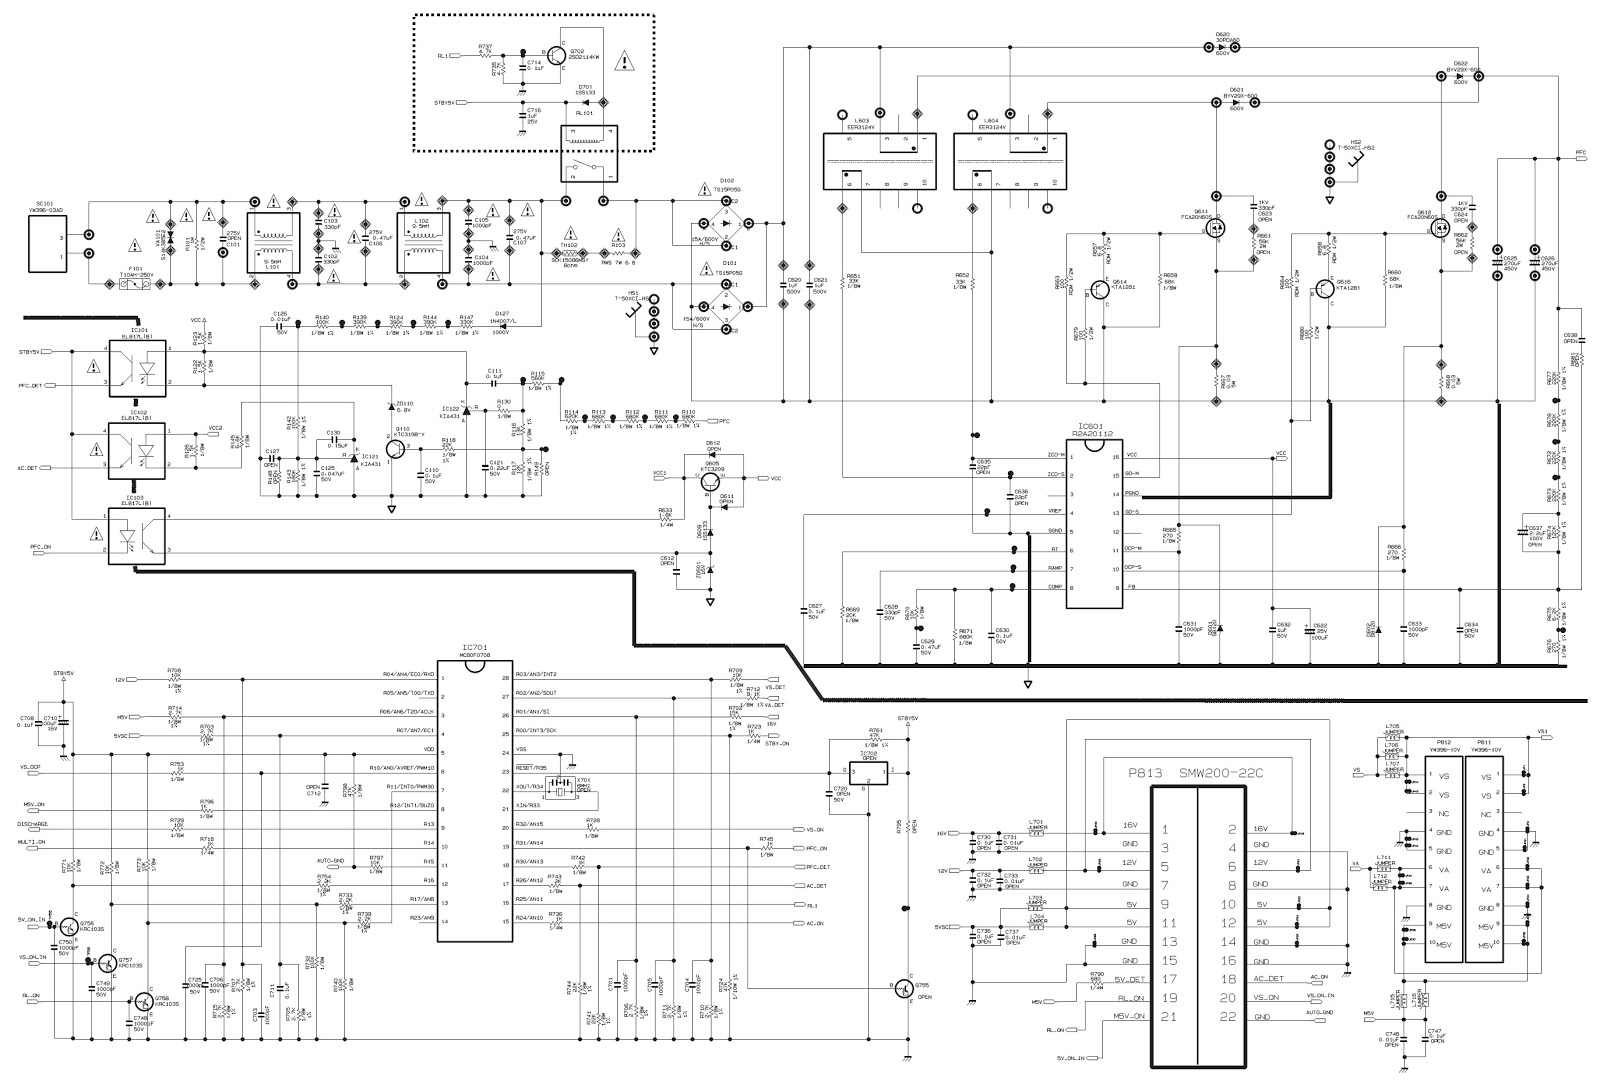 Smps Circuit Diagram With Explanation Pdf And Pwm Motor Speed Controller Using Ic556 Homemade Other Tv Circuits